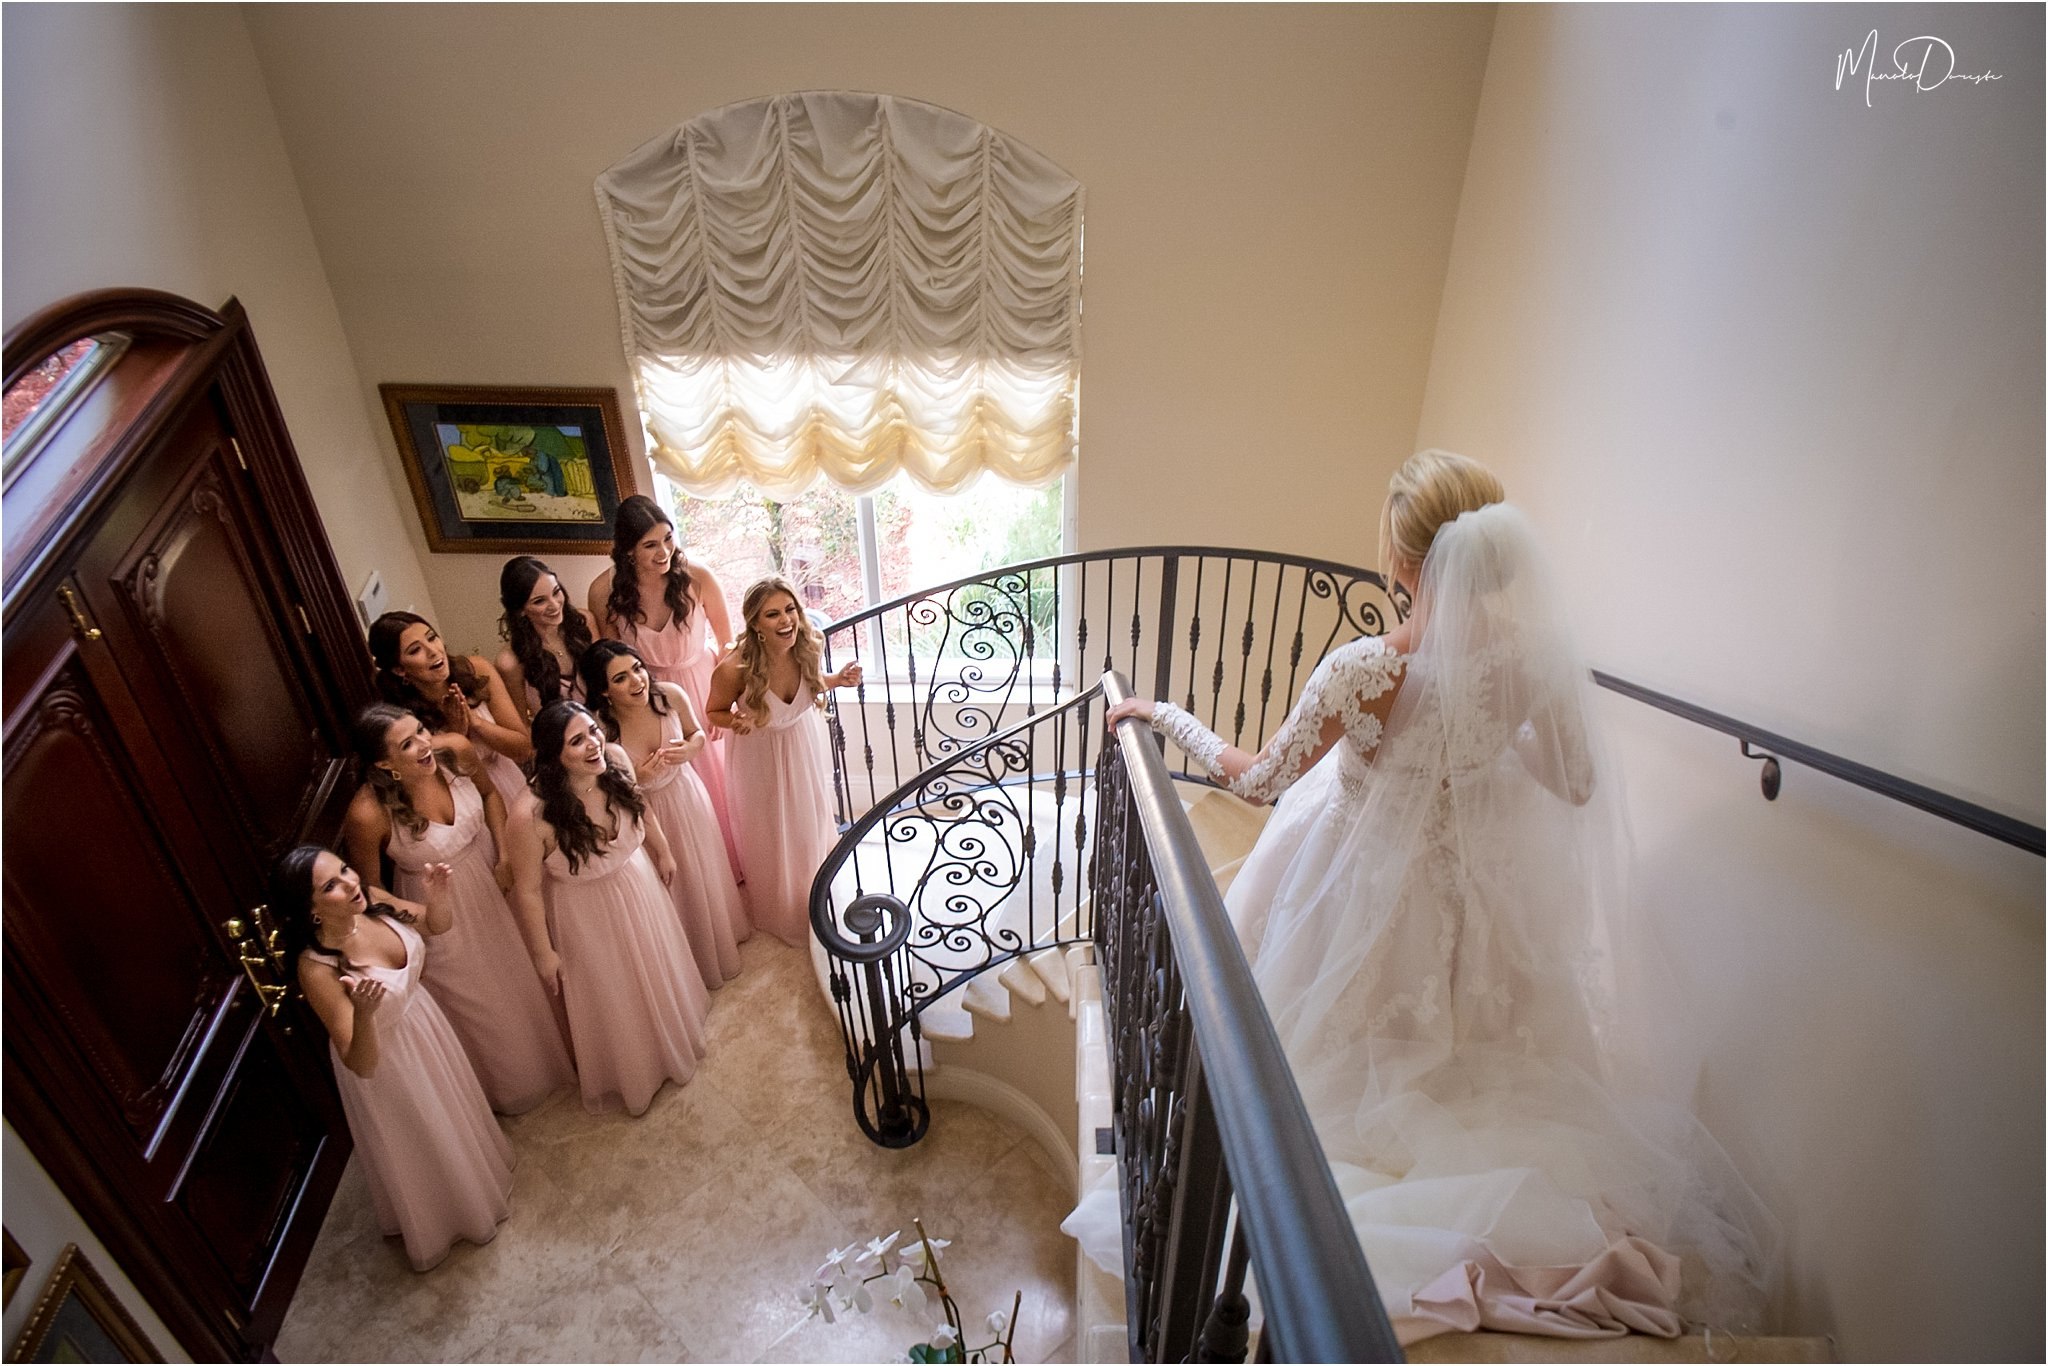 0256_ManoloDoreste_InFocusStudios_Wedding_Family_Photography_Miami_MiamiPhotographer.jpg